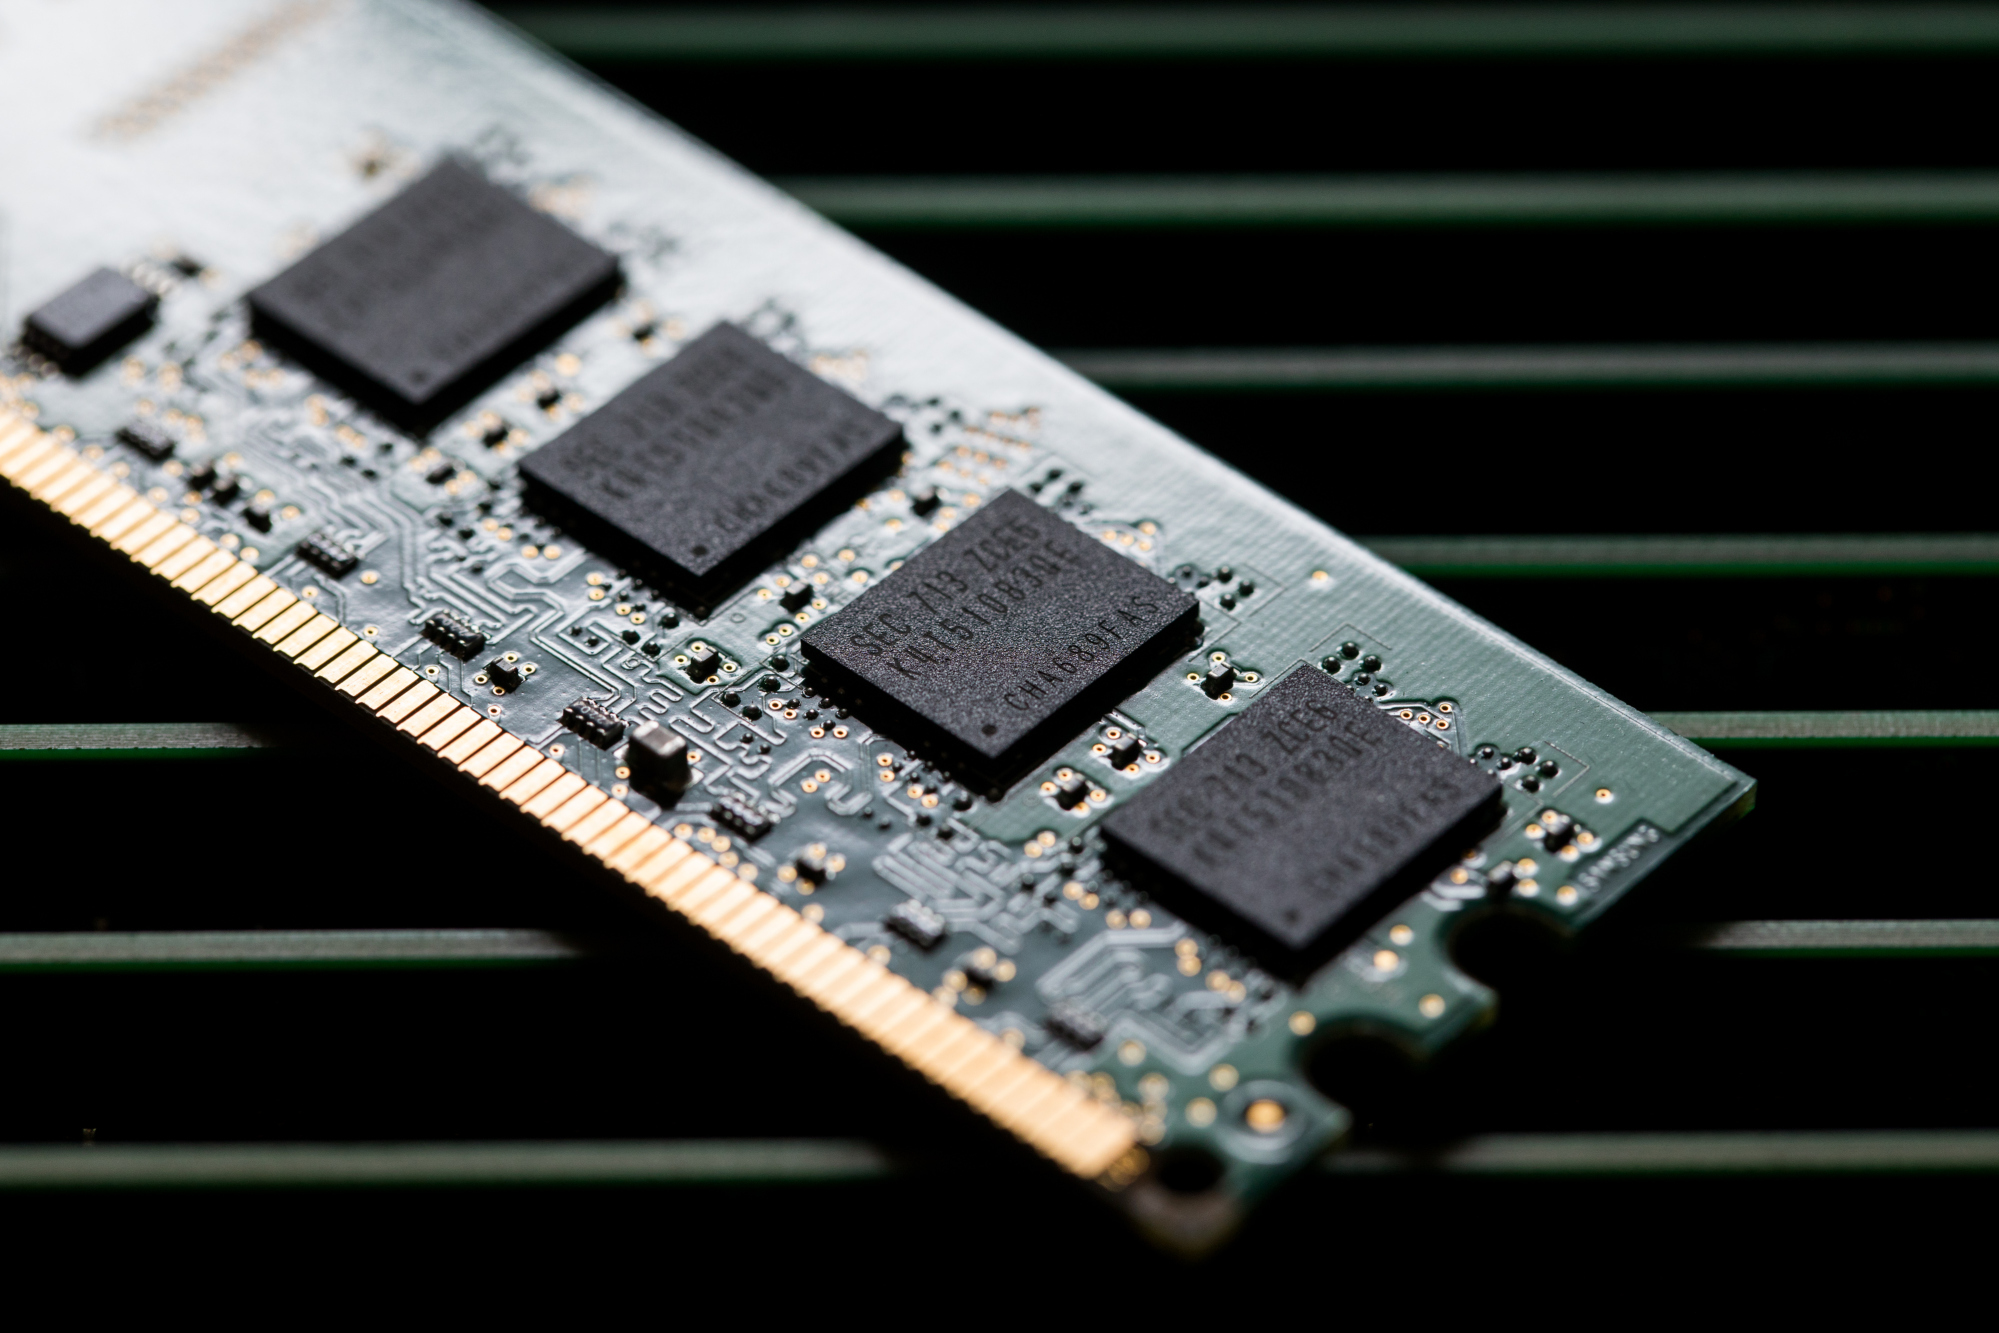 Aaplnasdaq Gs Stock Quote Apple Inc Bloomberg Markets High Grade Circuit Board For Scrap Gold Recovery Lot Of 19 Ebay